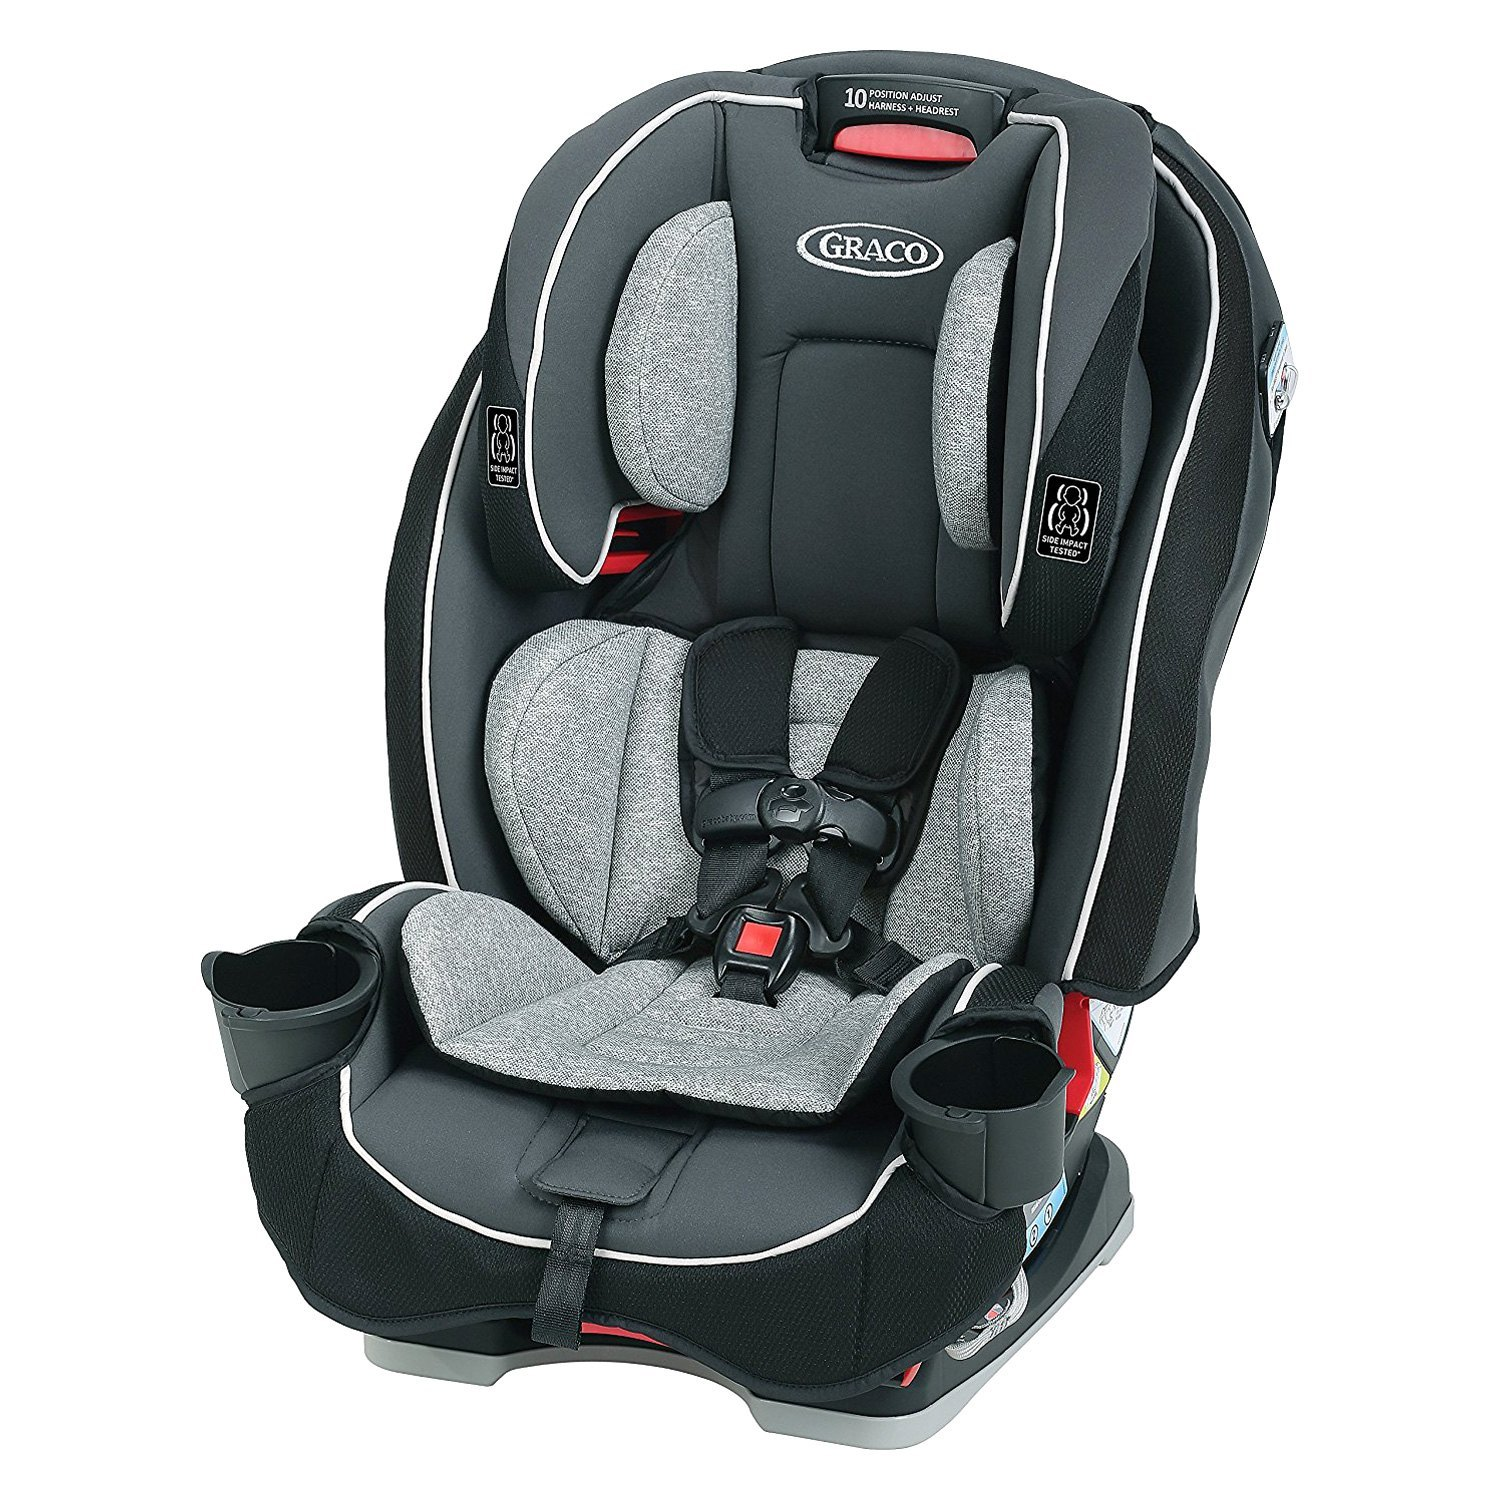 graco baby slimfit space saving all in one car seat. Black Bedroom Furniture Sets. Home Design Ideas